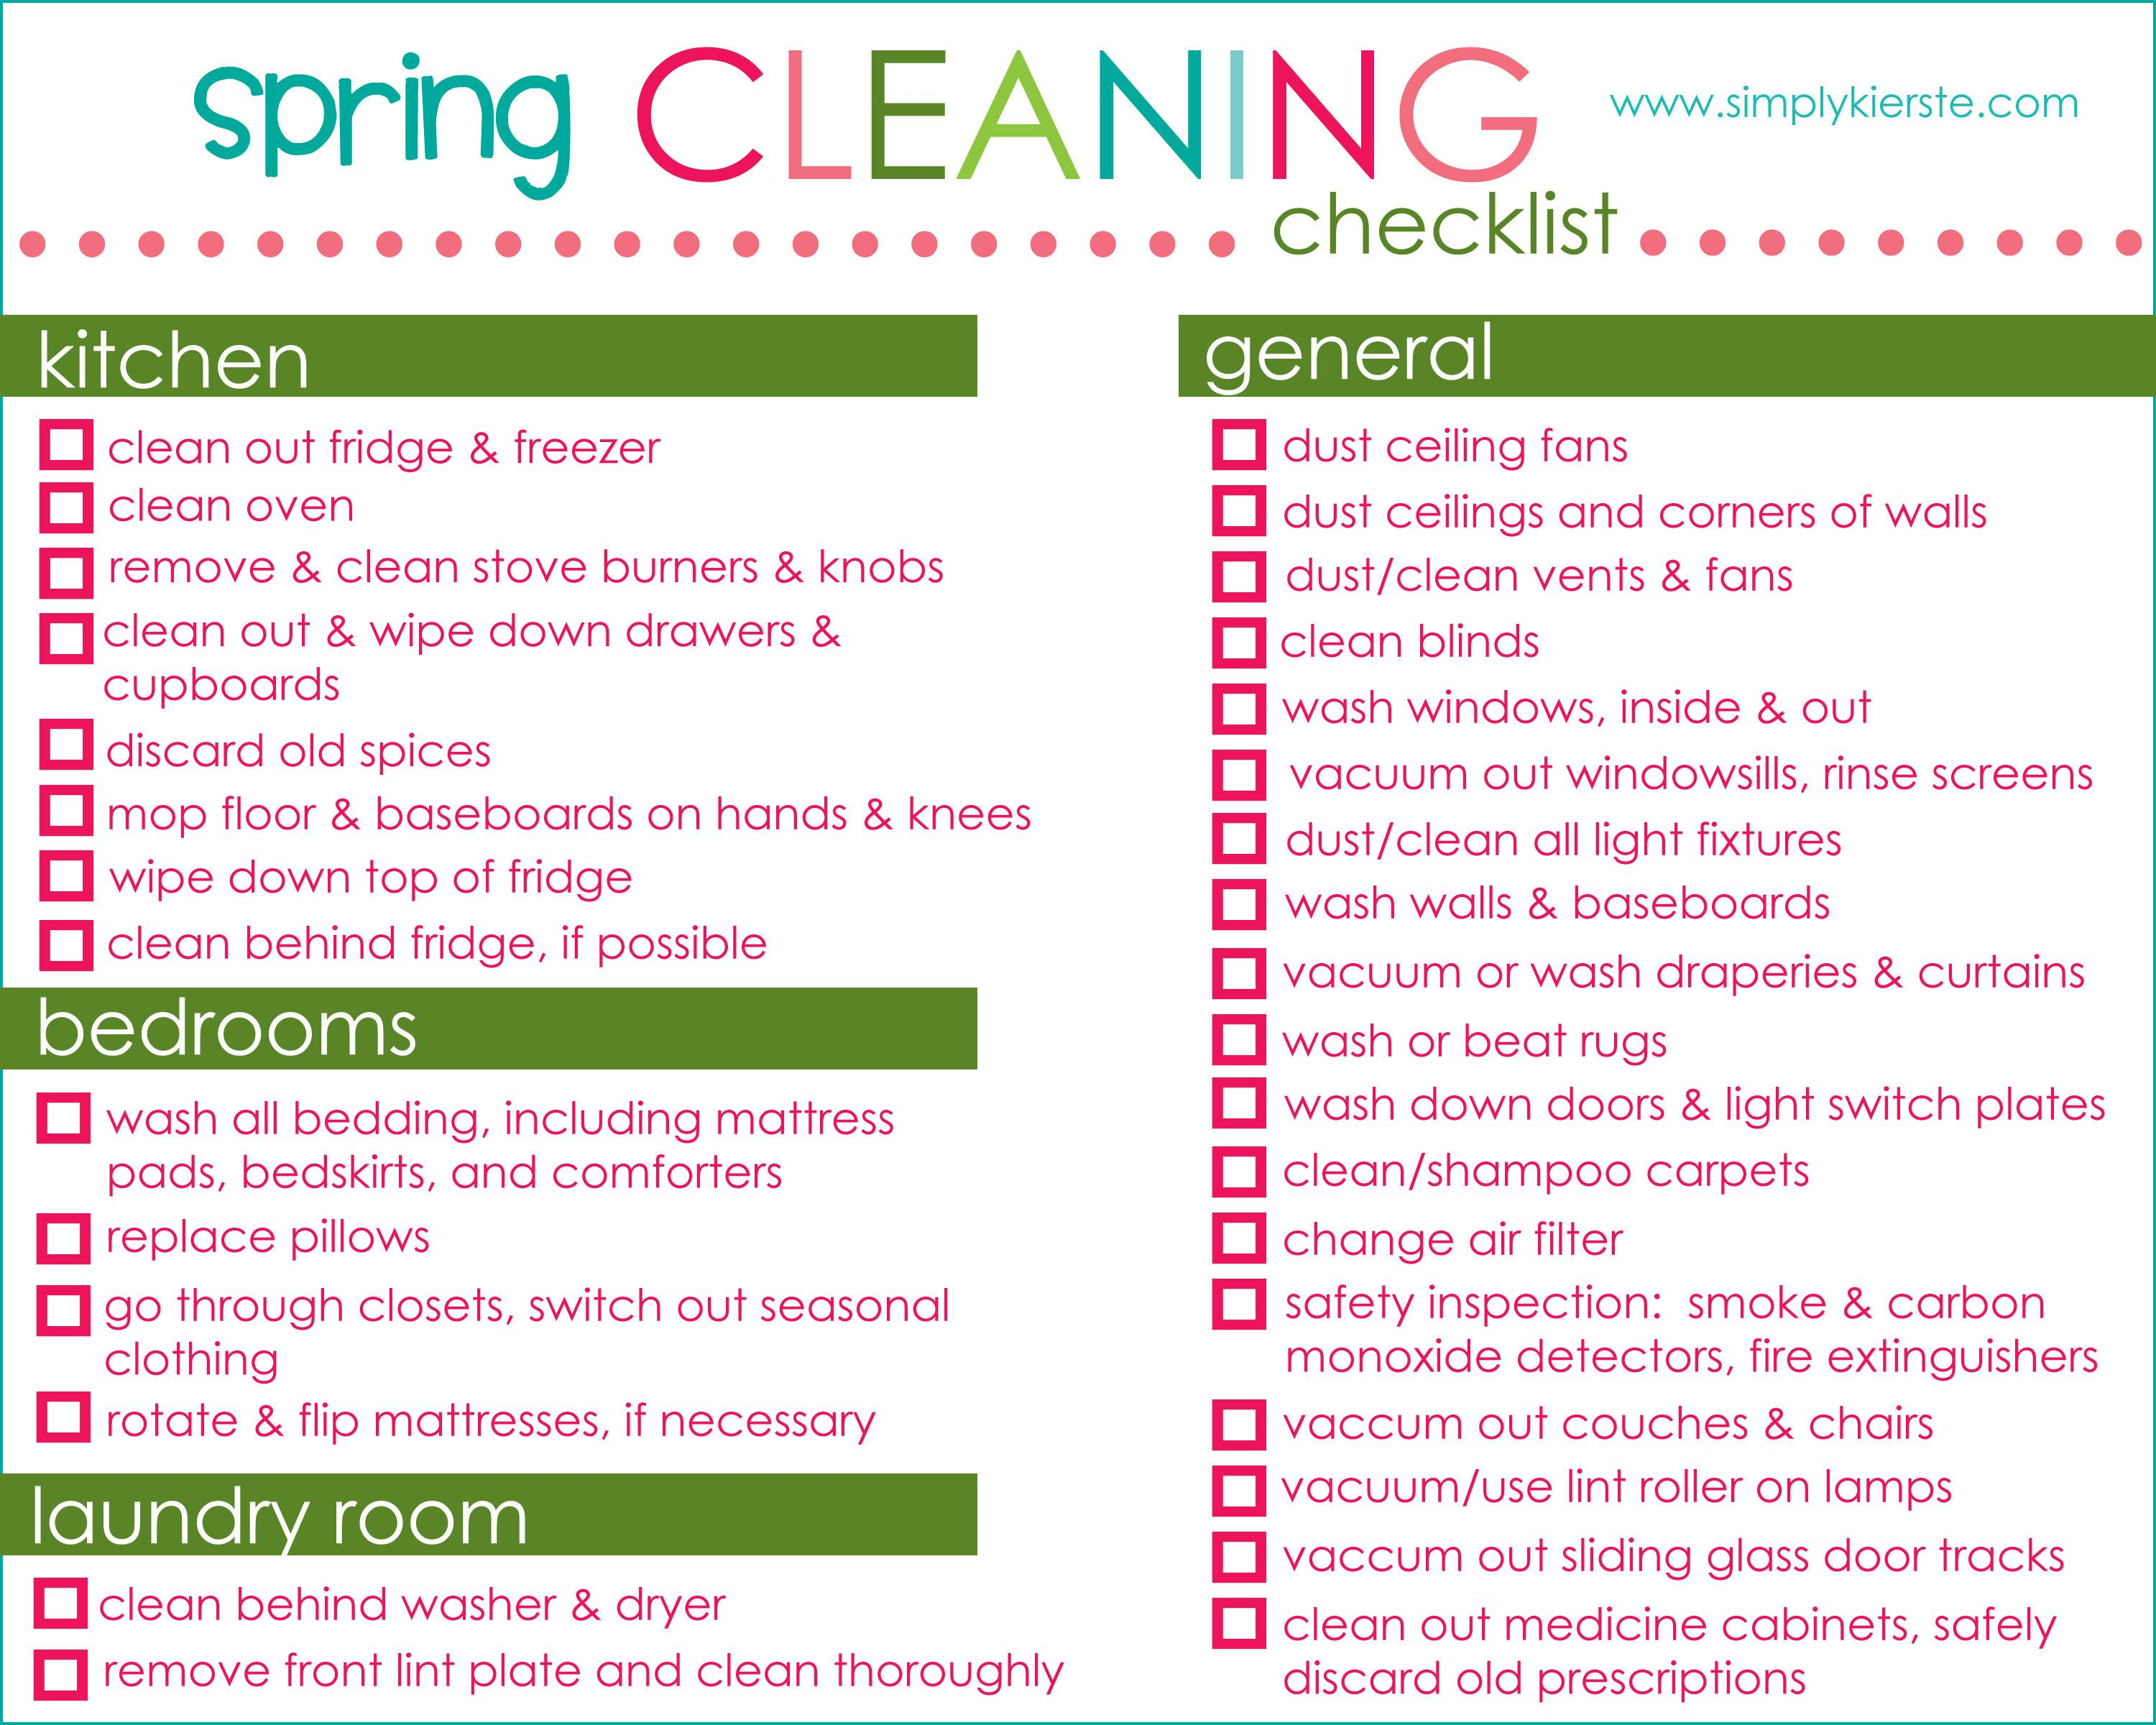 Spring Cleaning Checklist Tips Printable